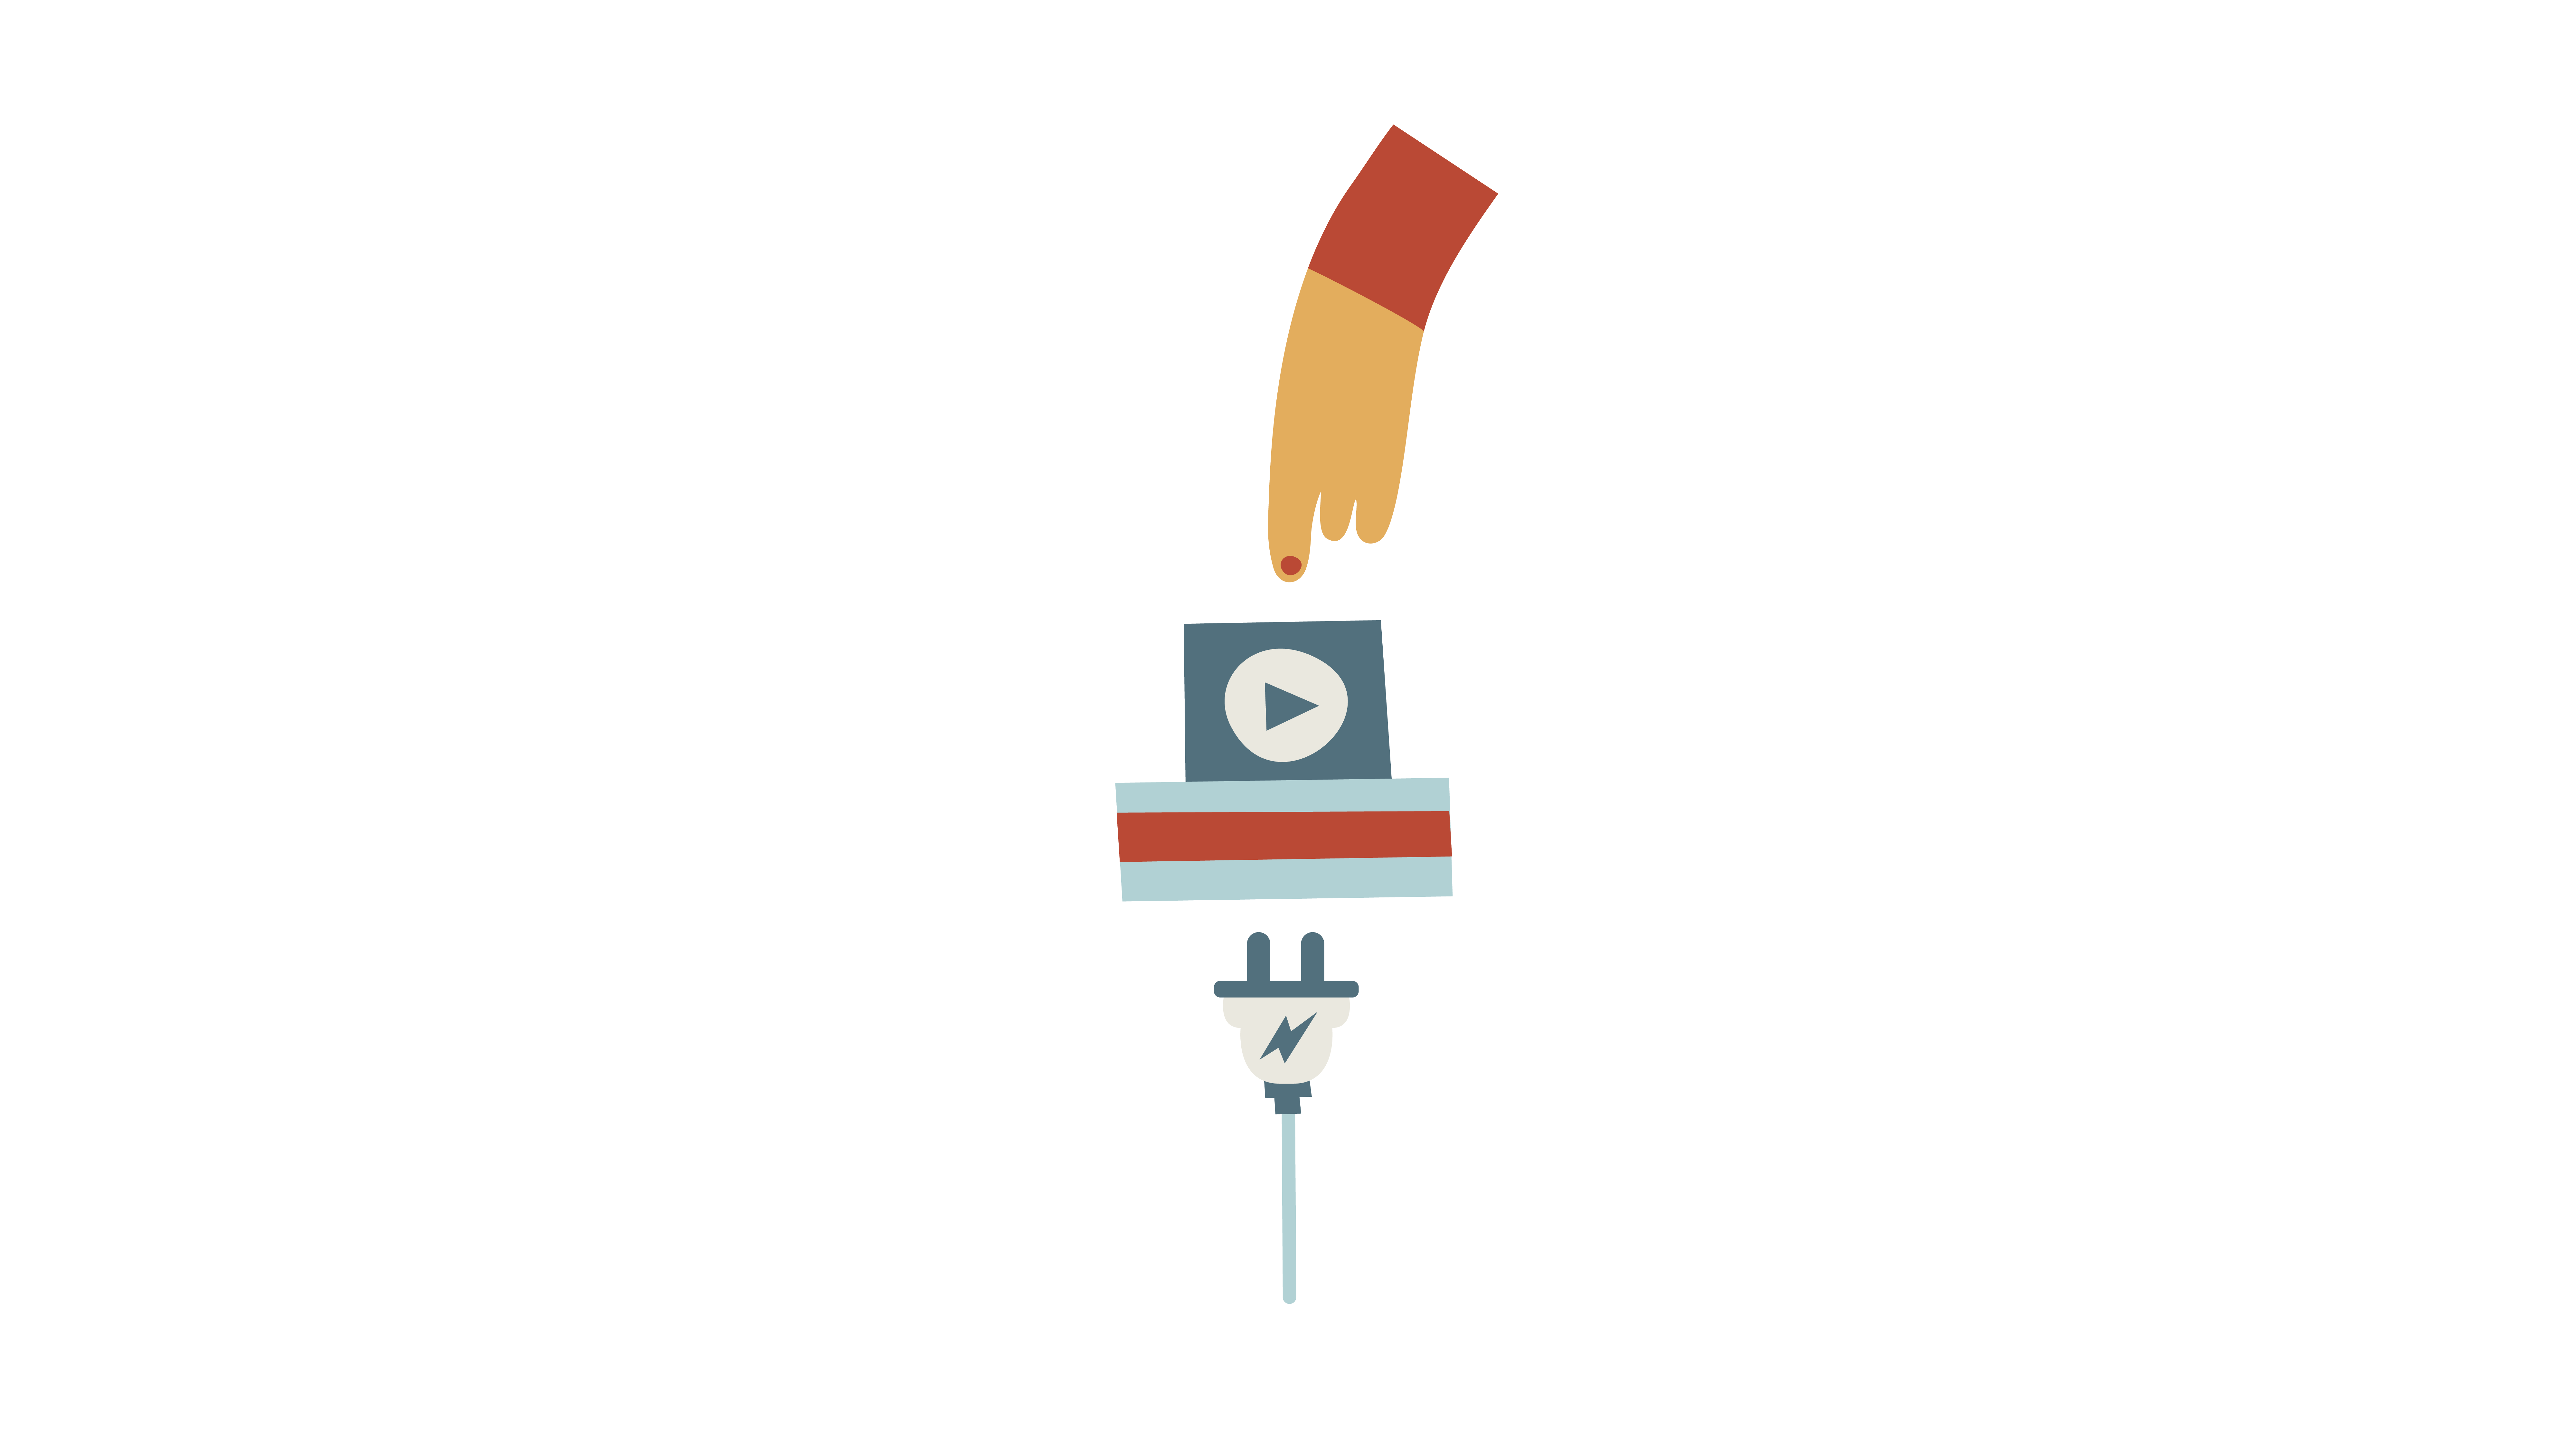 Illustration of a finger pushing a play button